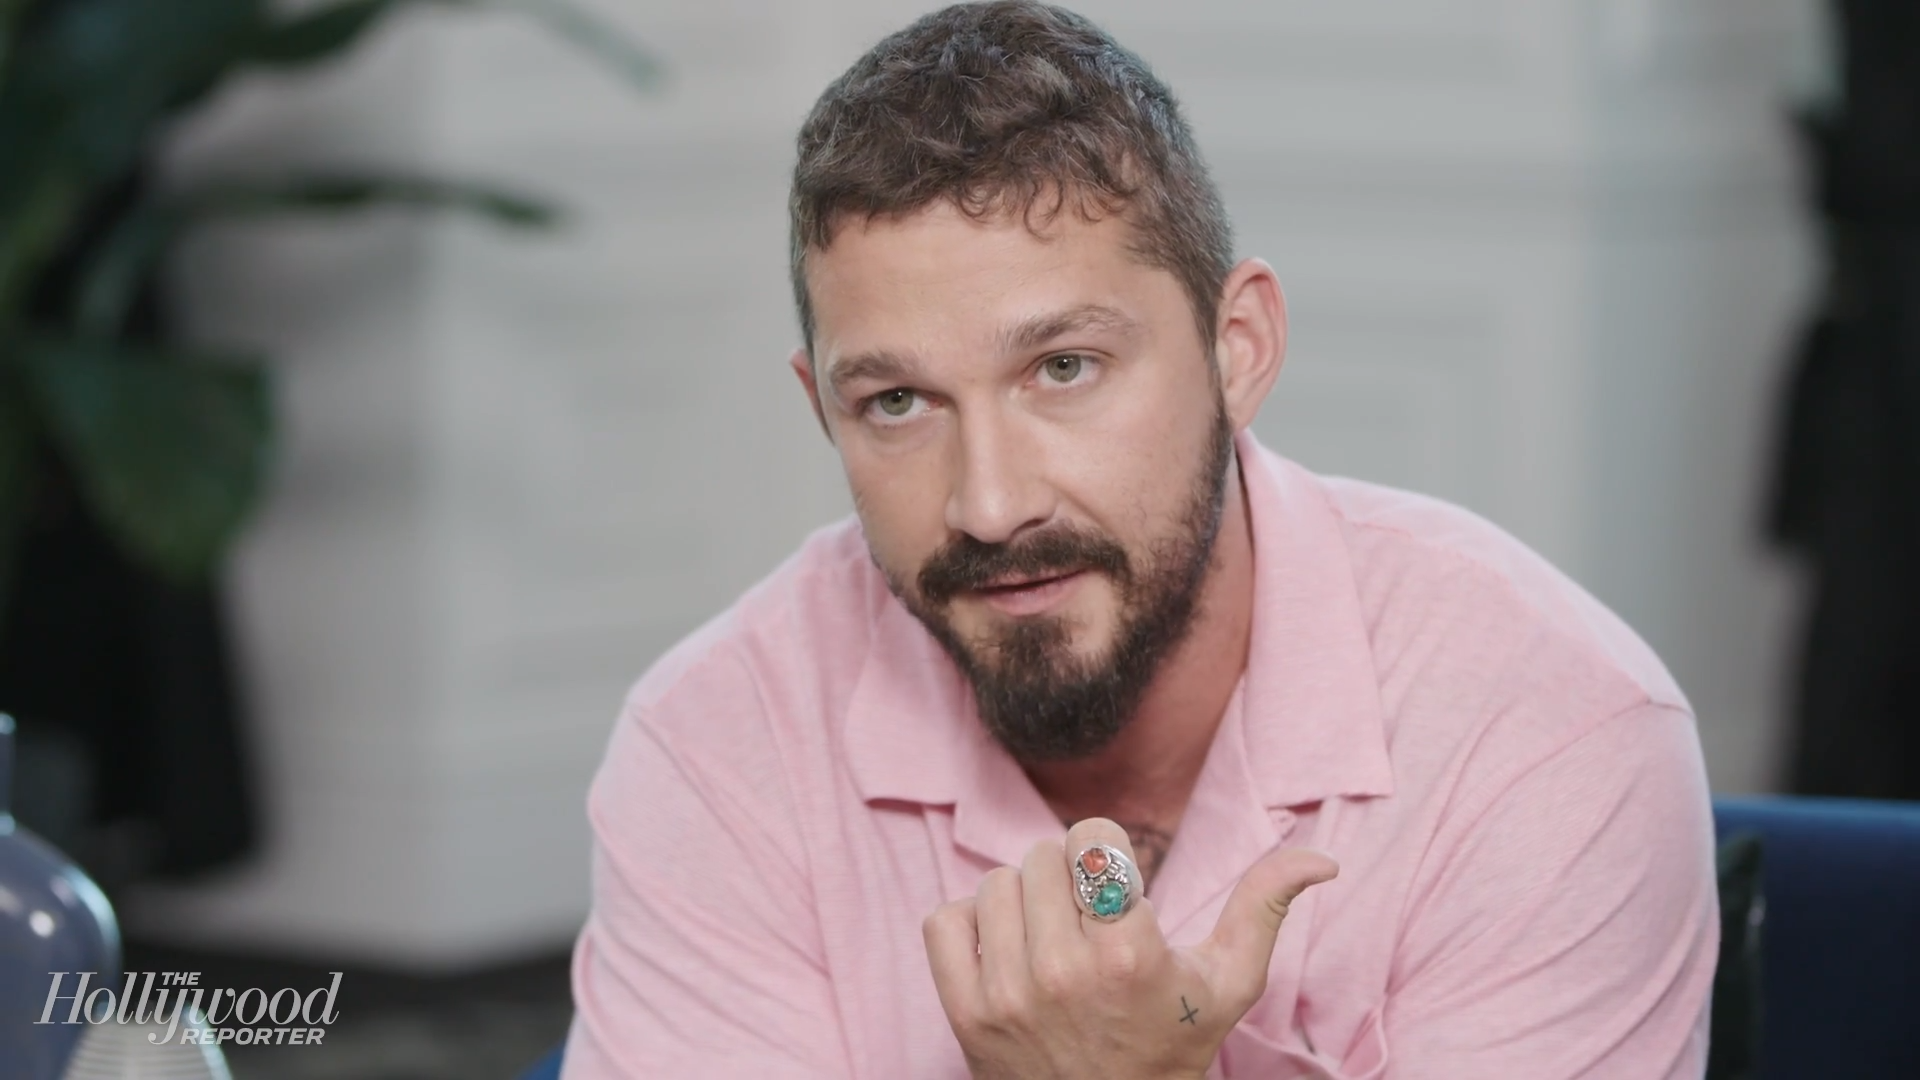 Shia LaBeouf on Playing His Father, Noah Jupe and Lucas Hedges as LaBeouf in 'Honey Boy' | TIFF 2019